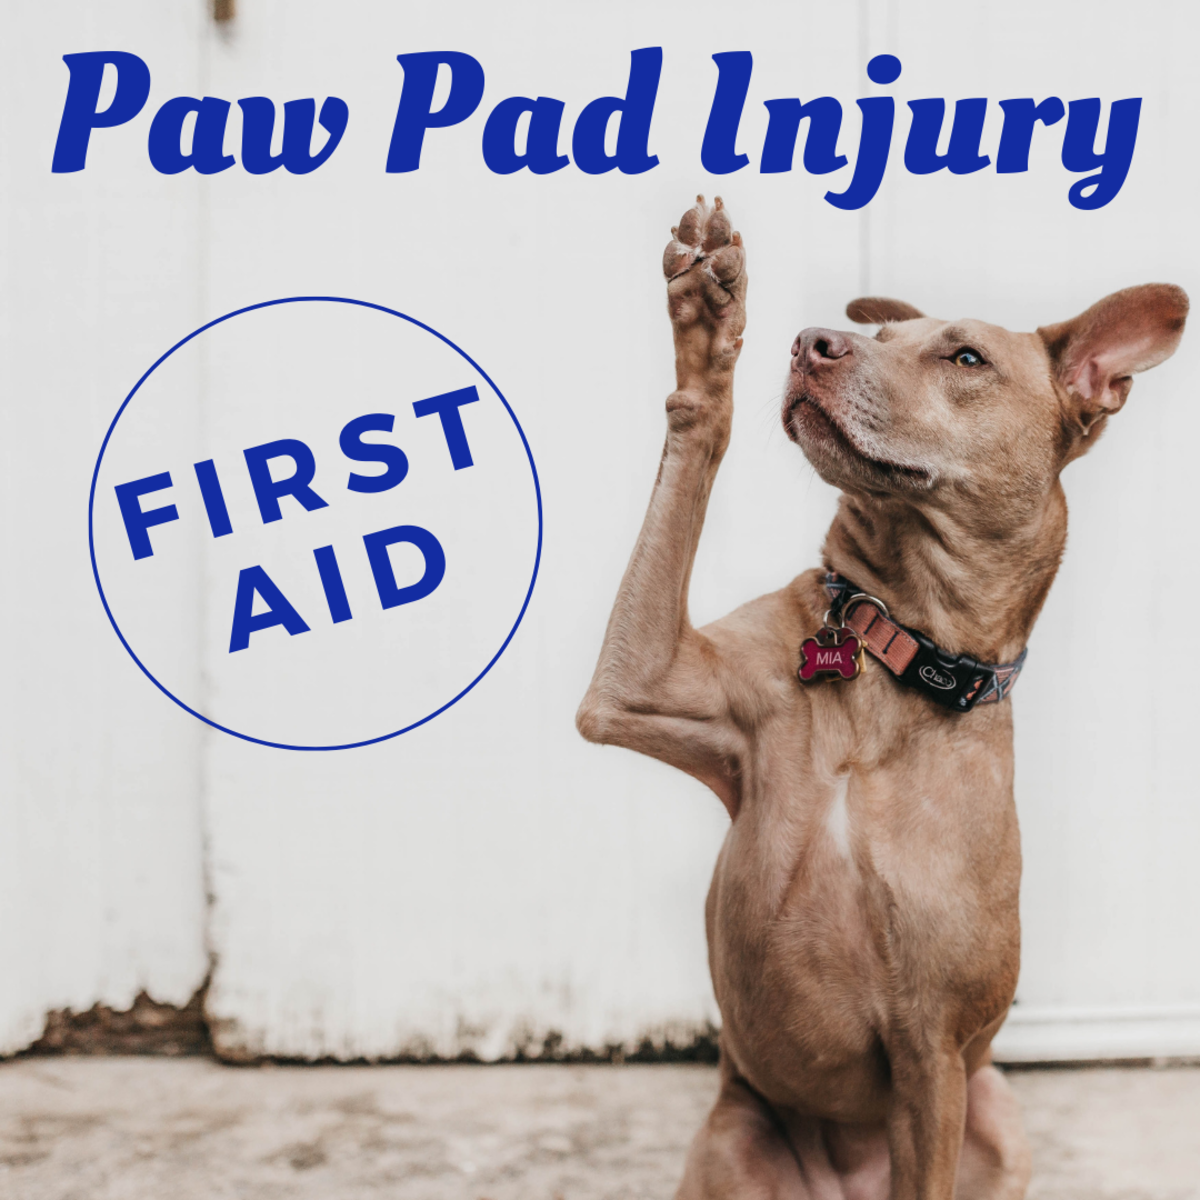 First Aid: How to Treat a Dog's Paw Pad Injury